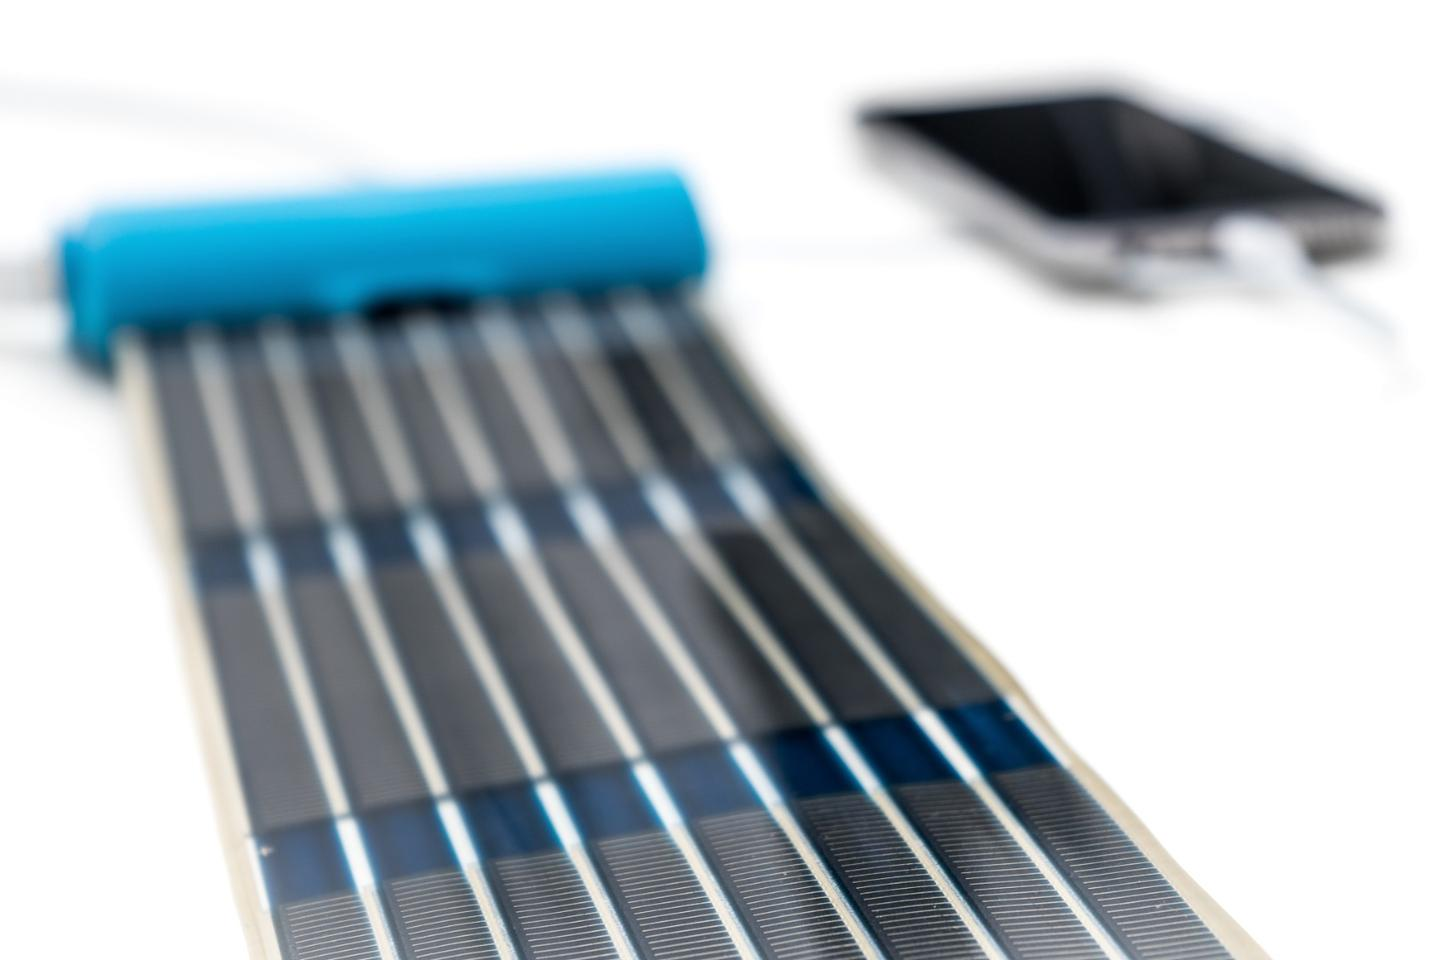 The HeLi-on solar panel is designed with polymer cells printed directly on a plastic foil